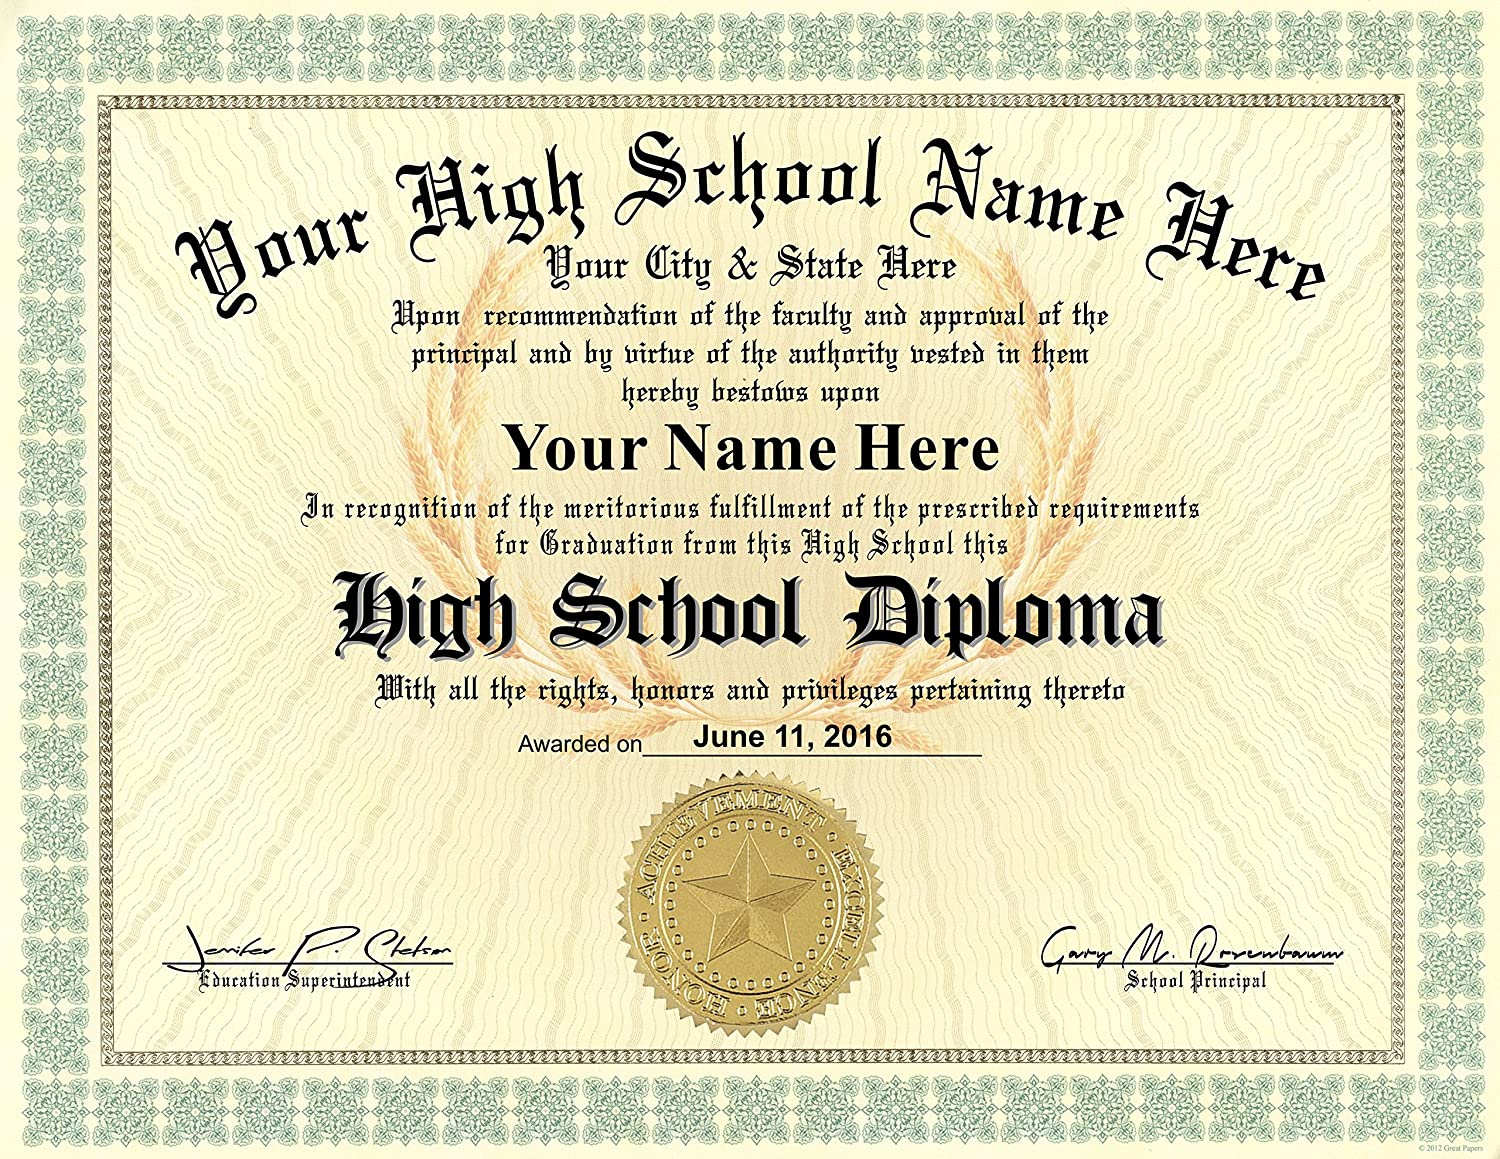 Amazon.com : High School Diploma Custom Printed with Your Info - Premium  Quality - 8.5 by 11 inches : Office Products